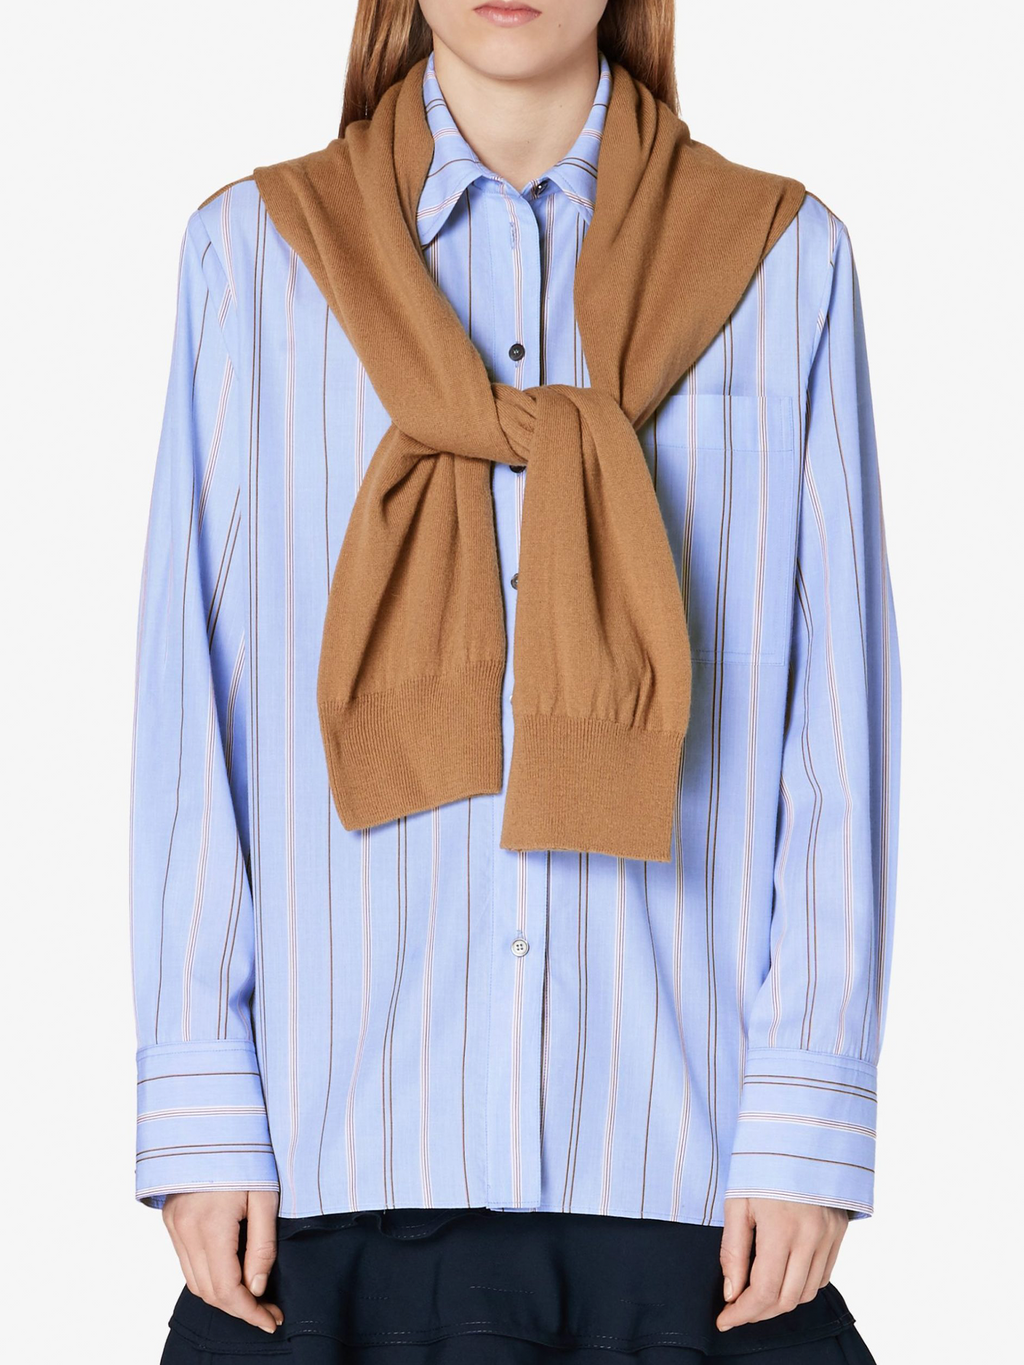 Derek Lam 10 Crosby Long Sleeve Button Down with Scarf